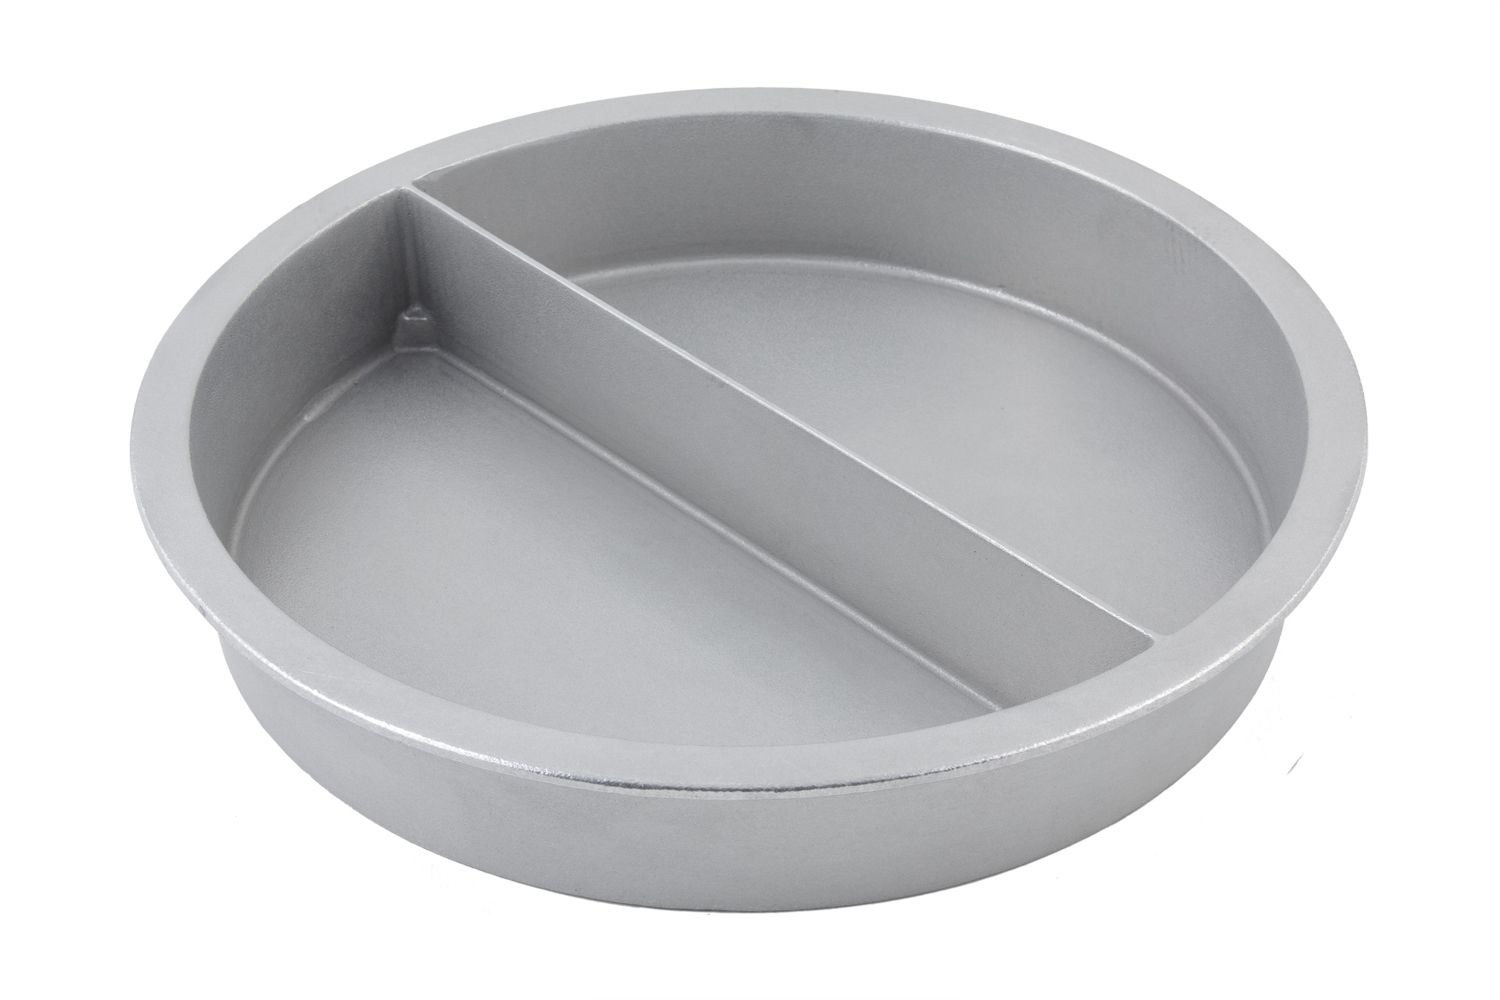 Bon Chef 5074P Round Divided Food Pan, Pewter Glo 8 Qt..